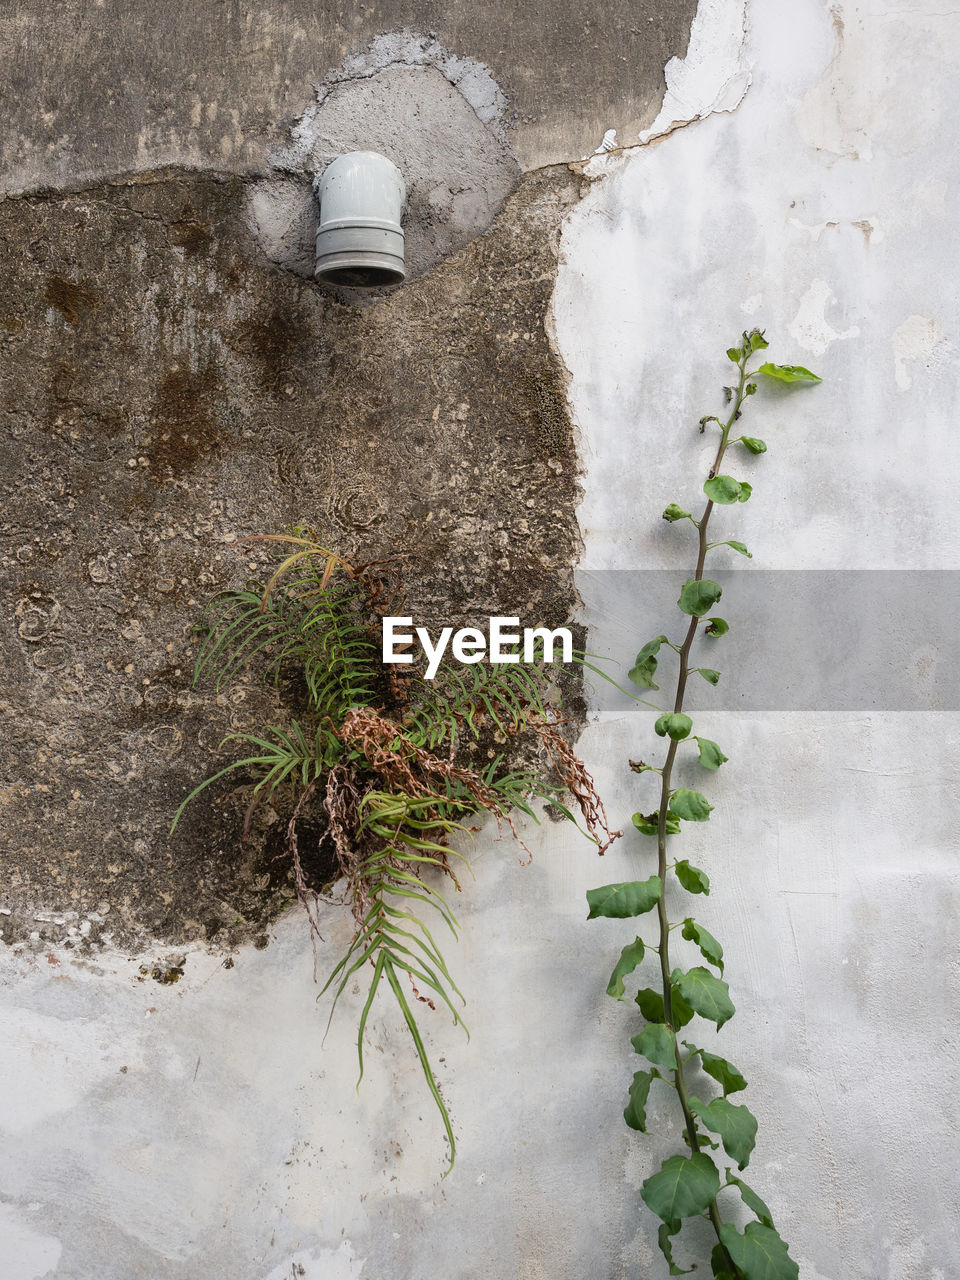 plant, leaf, plant part, nature, wall - building feature, growth, no people, day, built structure, green color, outdoors, architecture, building exterior, beauty in nature, wall, winter, white color, cold temperature, concrete